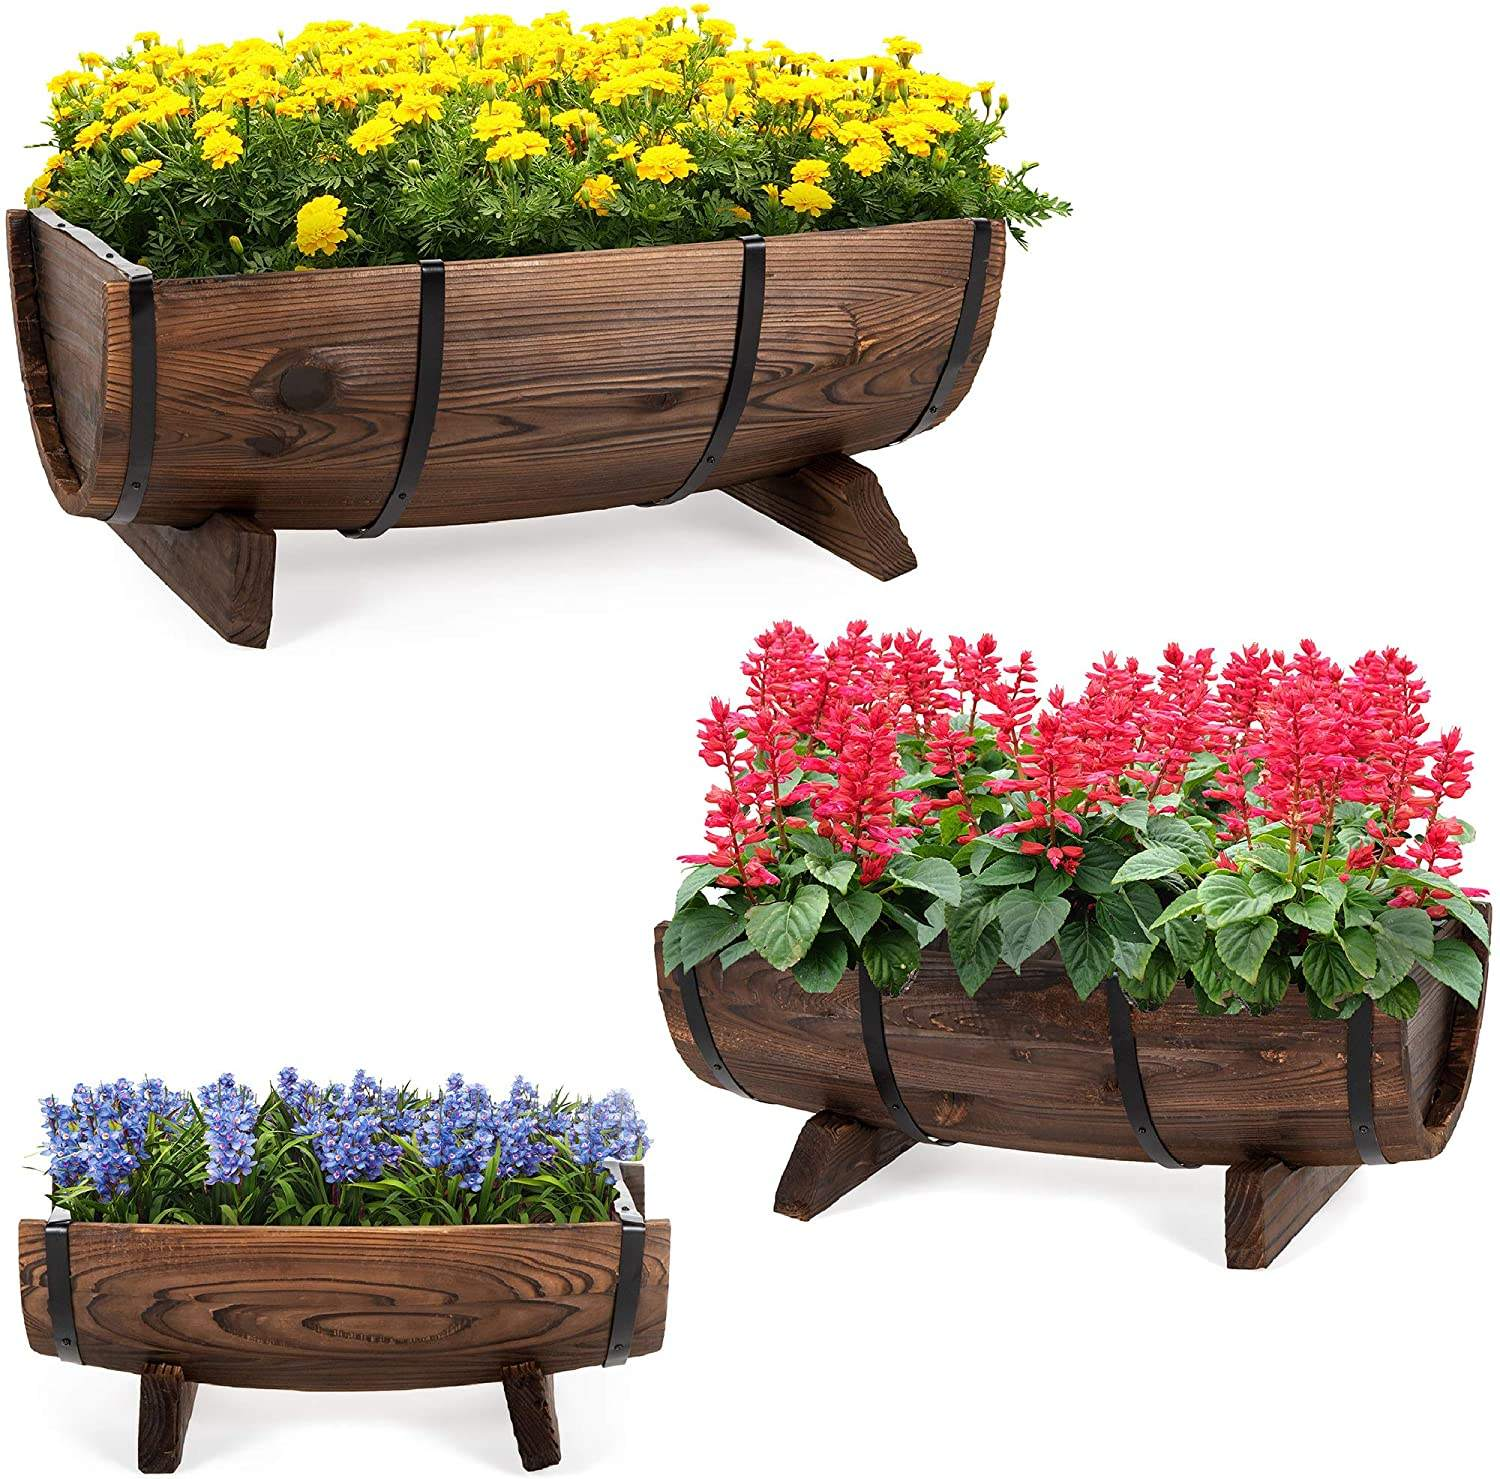 Set of 3 Wooden Half Barrel Garden Planters Set Rustic Decorative Flower Beds for Plants, Herbs, Veggies w/Drainage Holes, Multi